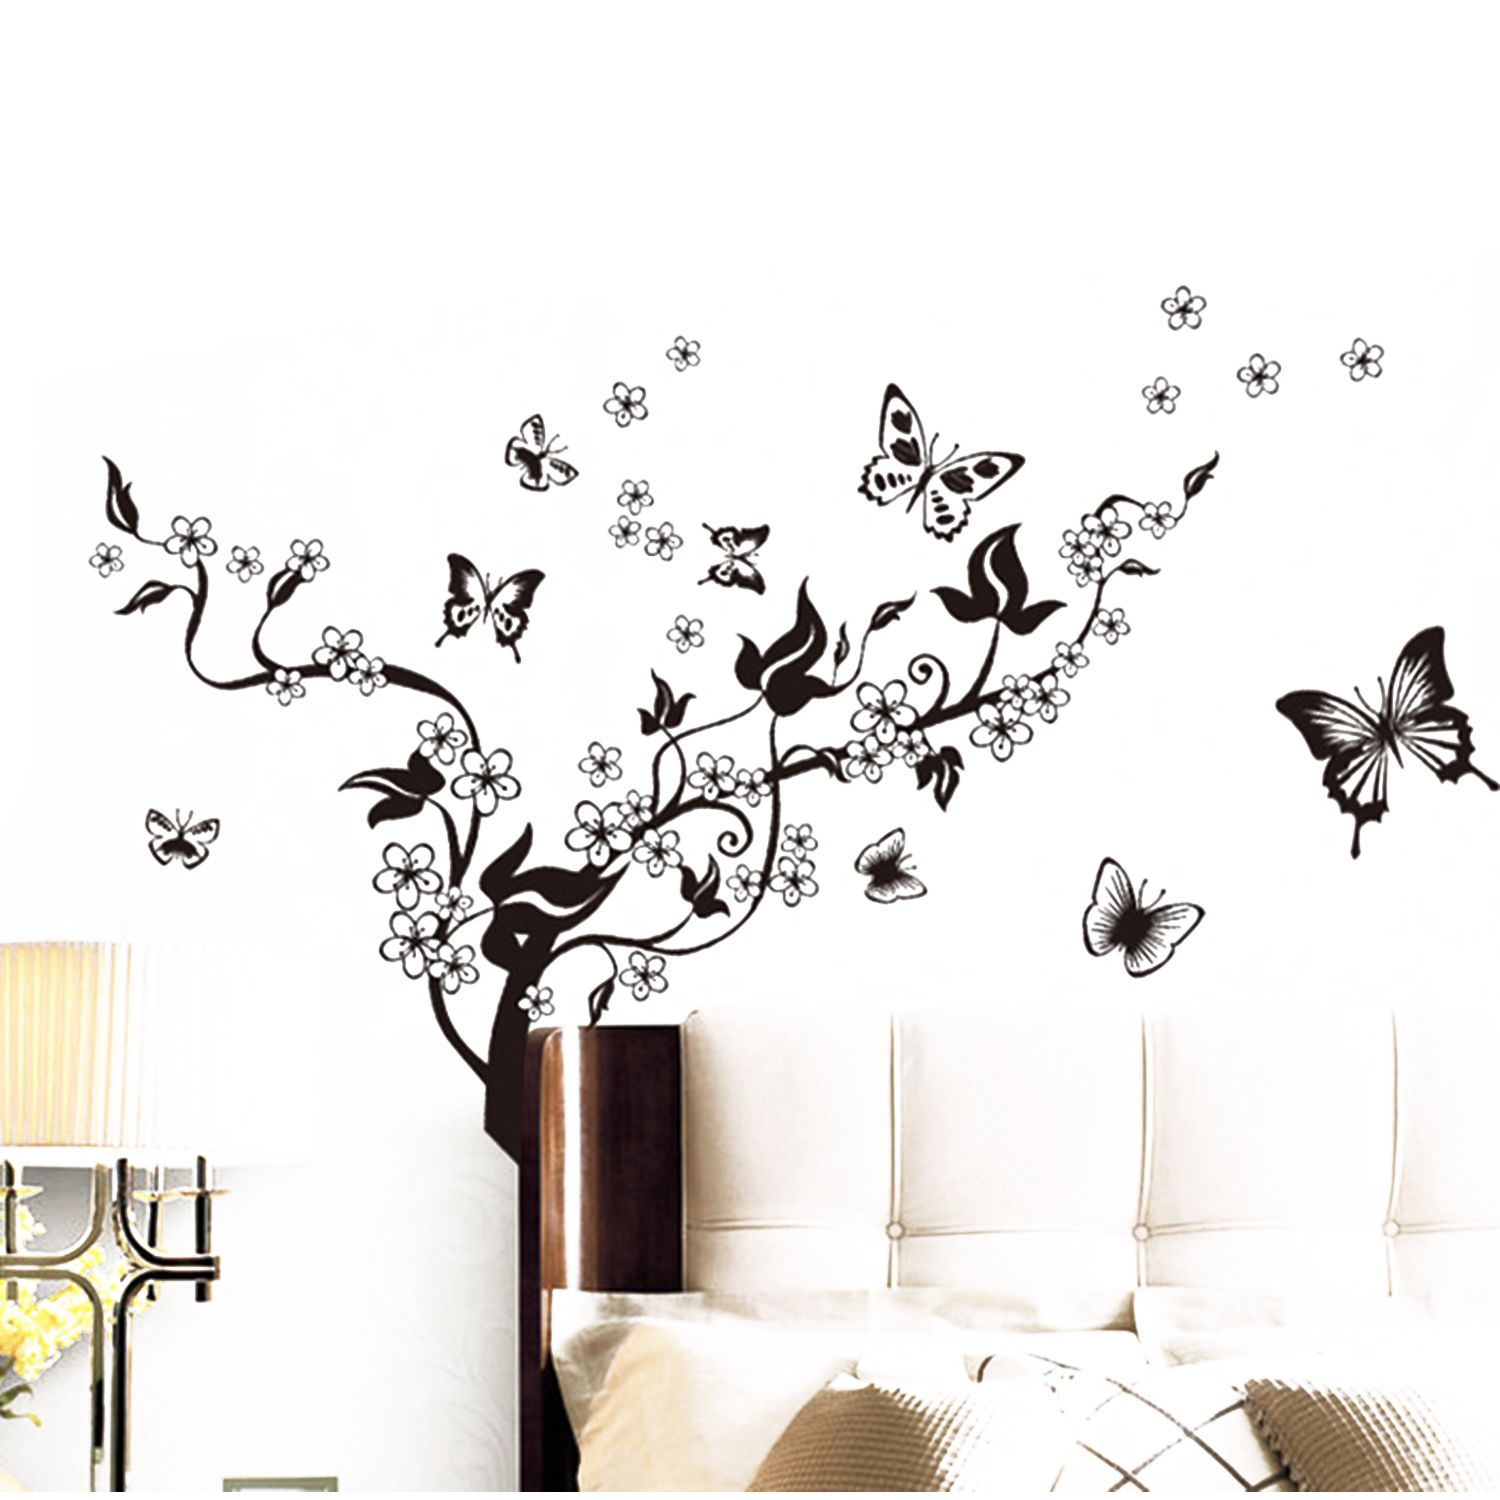 Romantic Trees And Butterflies Removable PVC Decorative Wall Stickers Decals Car Home DIY Decor